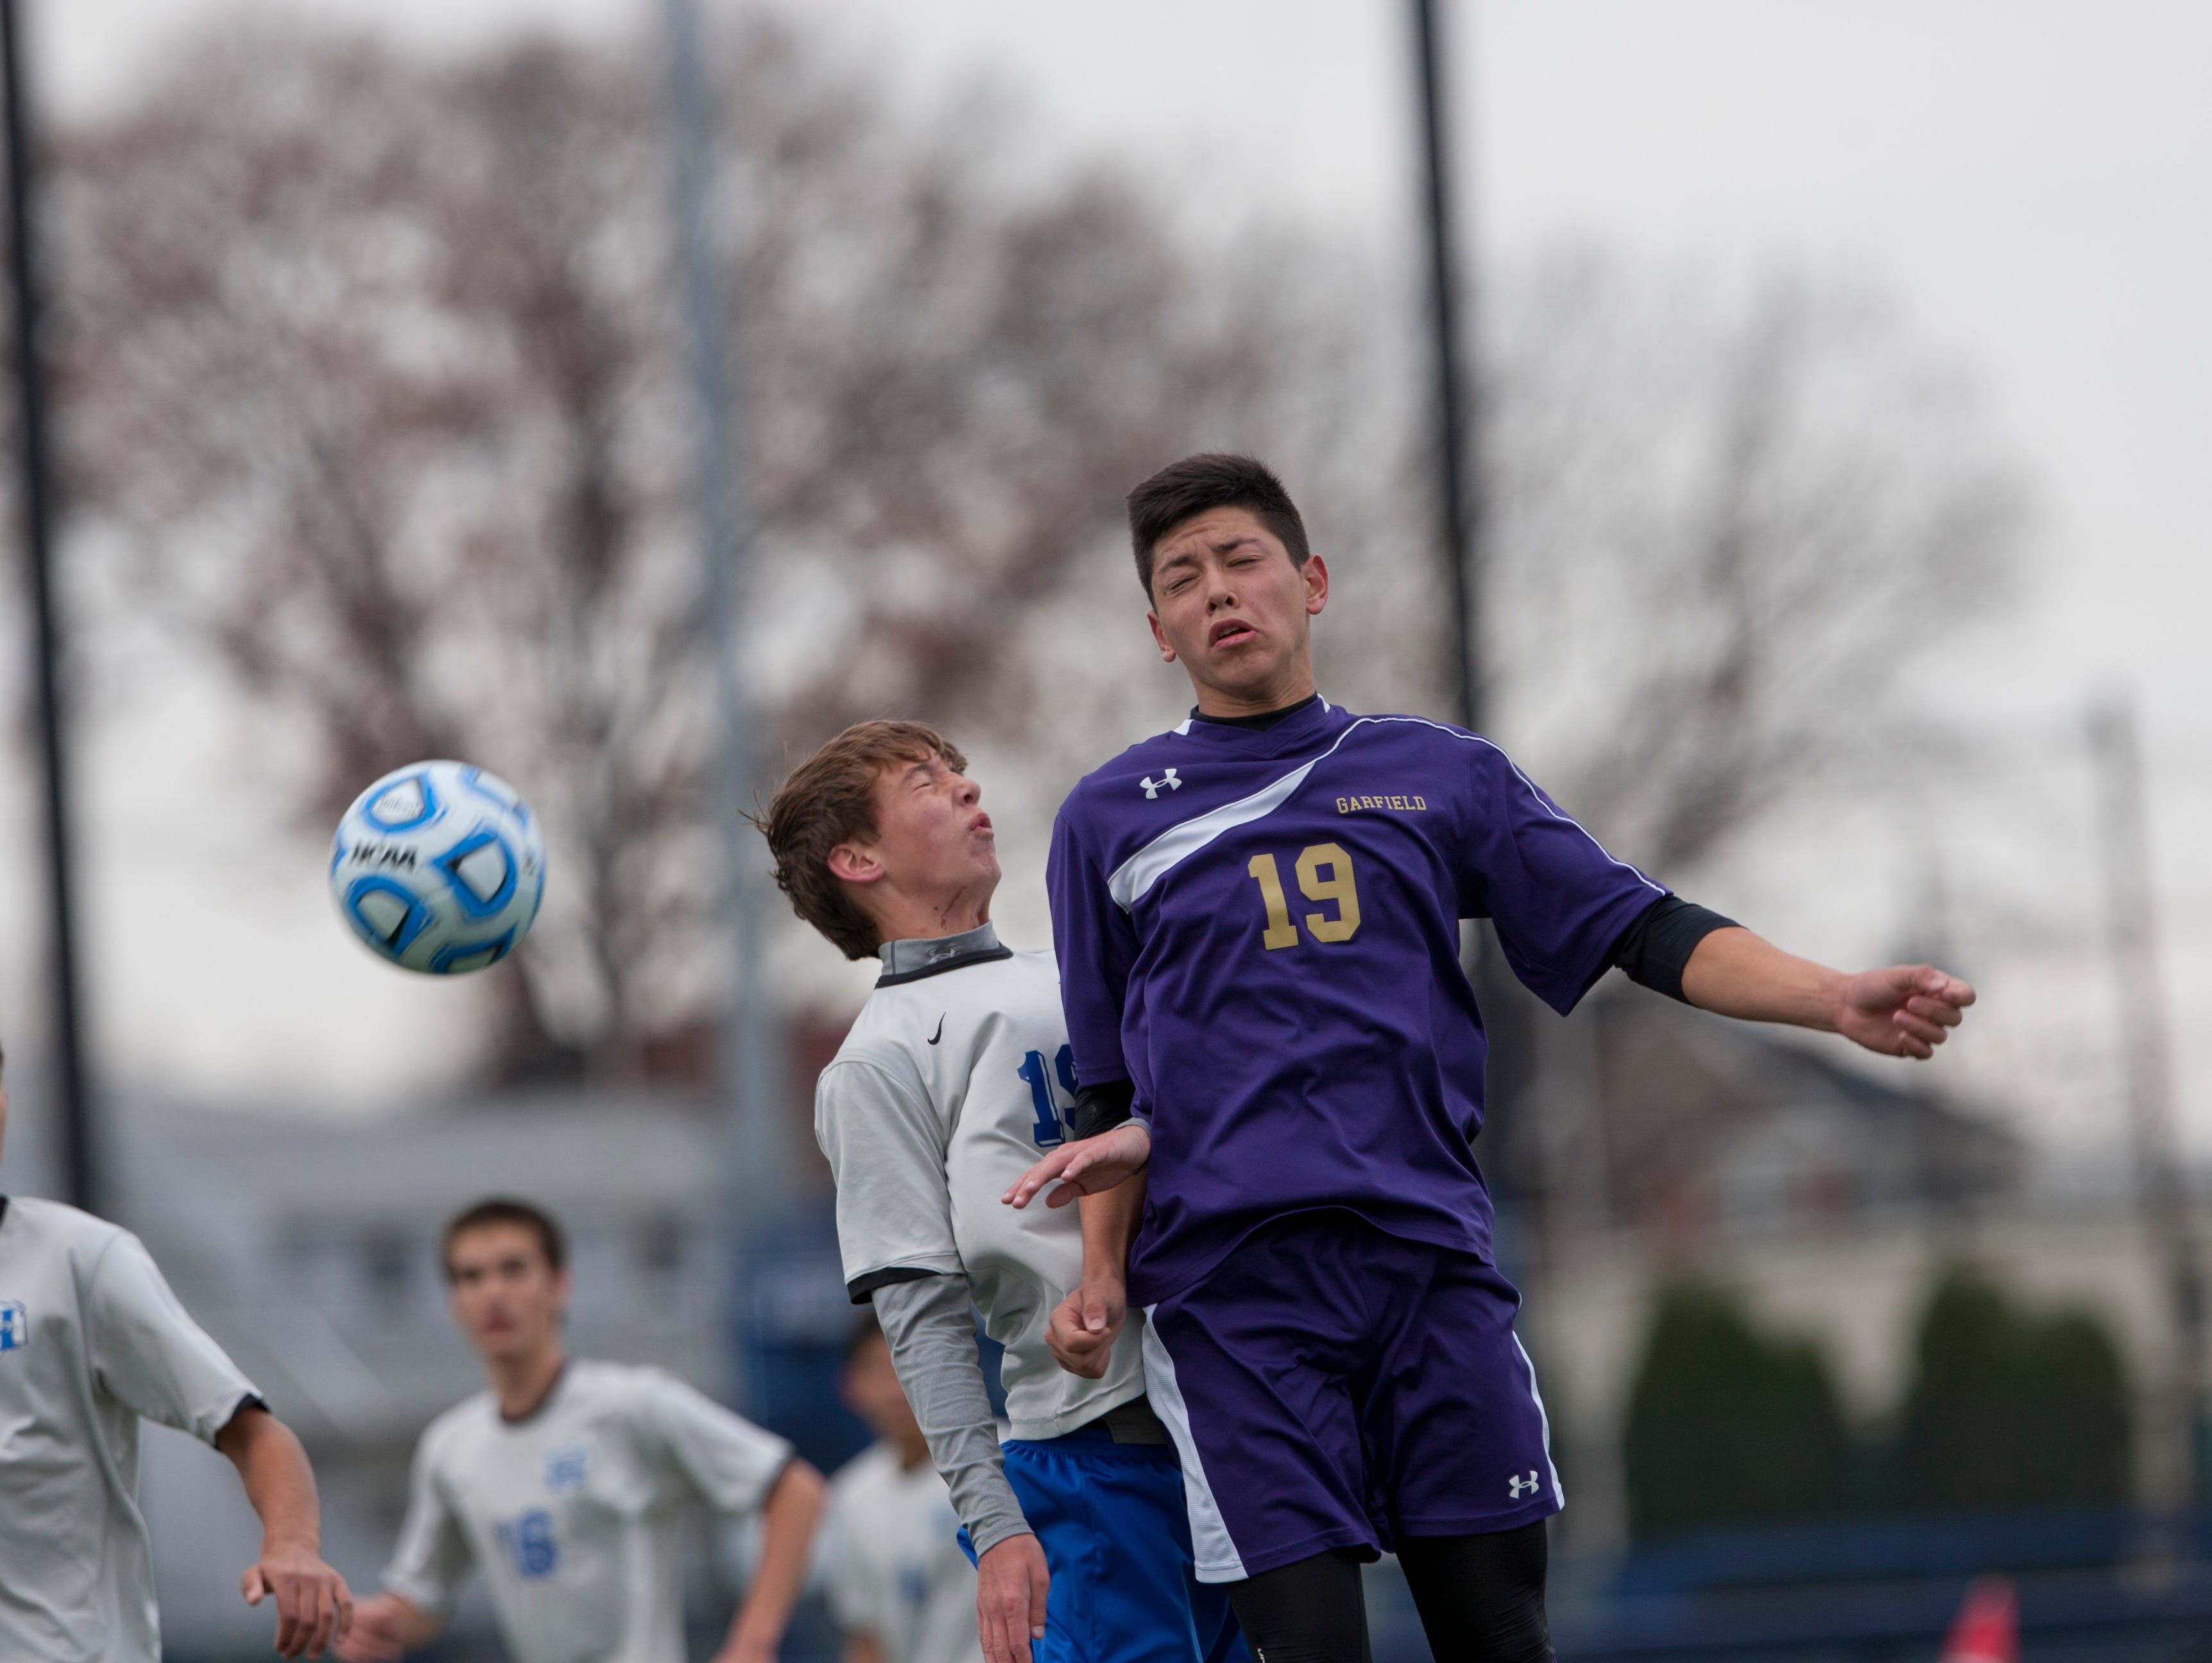 Holmdel's Justin McStay and Garfield's Mahmoud Qatmira battle for a headball during first half action. Holmdel Boys Soccer vs Garfield in NJSIAA State Group II Championship at Kean University on November 22, 2015 in Union, NJ.